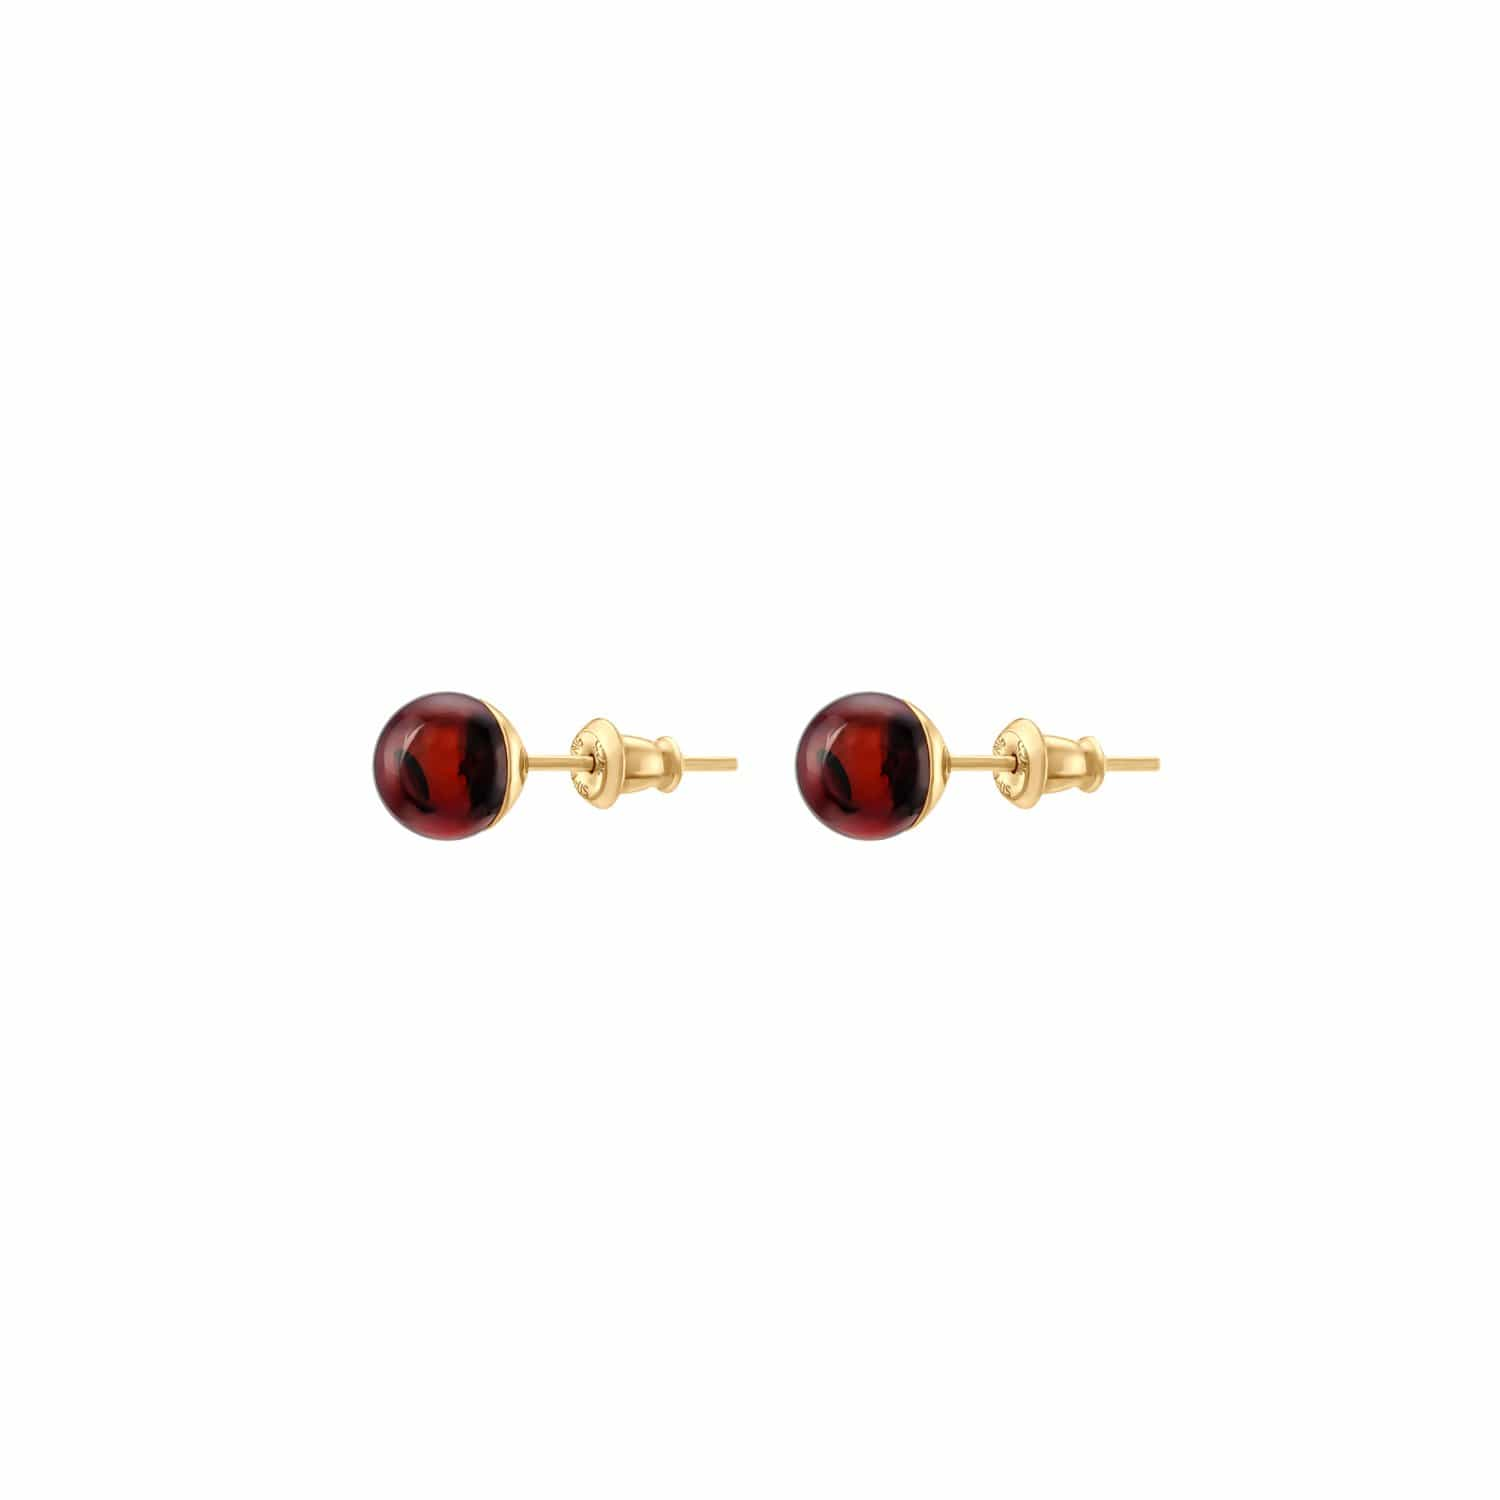 Leta Earrings 1919 Cherry Amber Stud Earrings